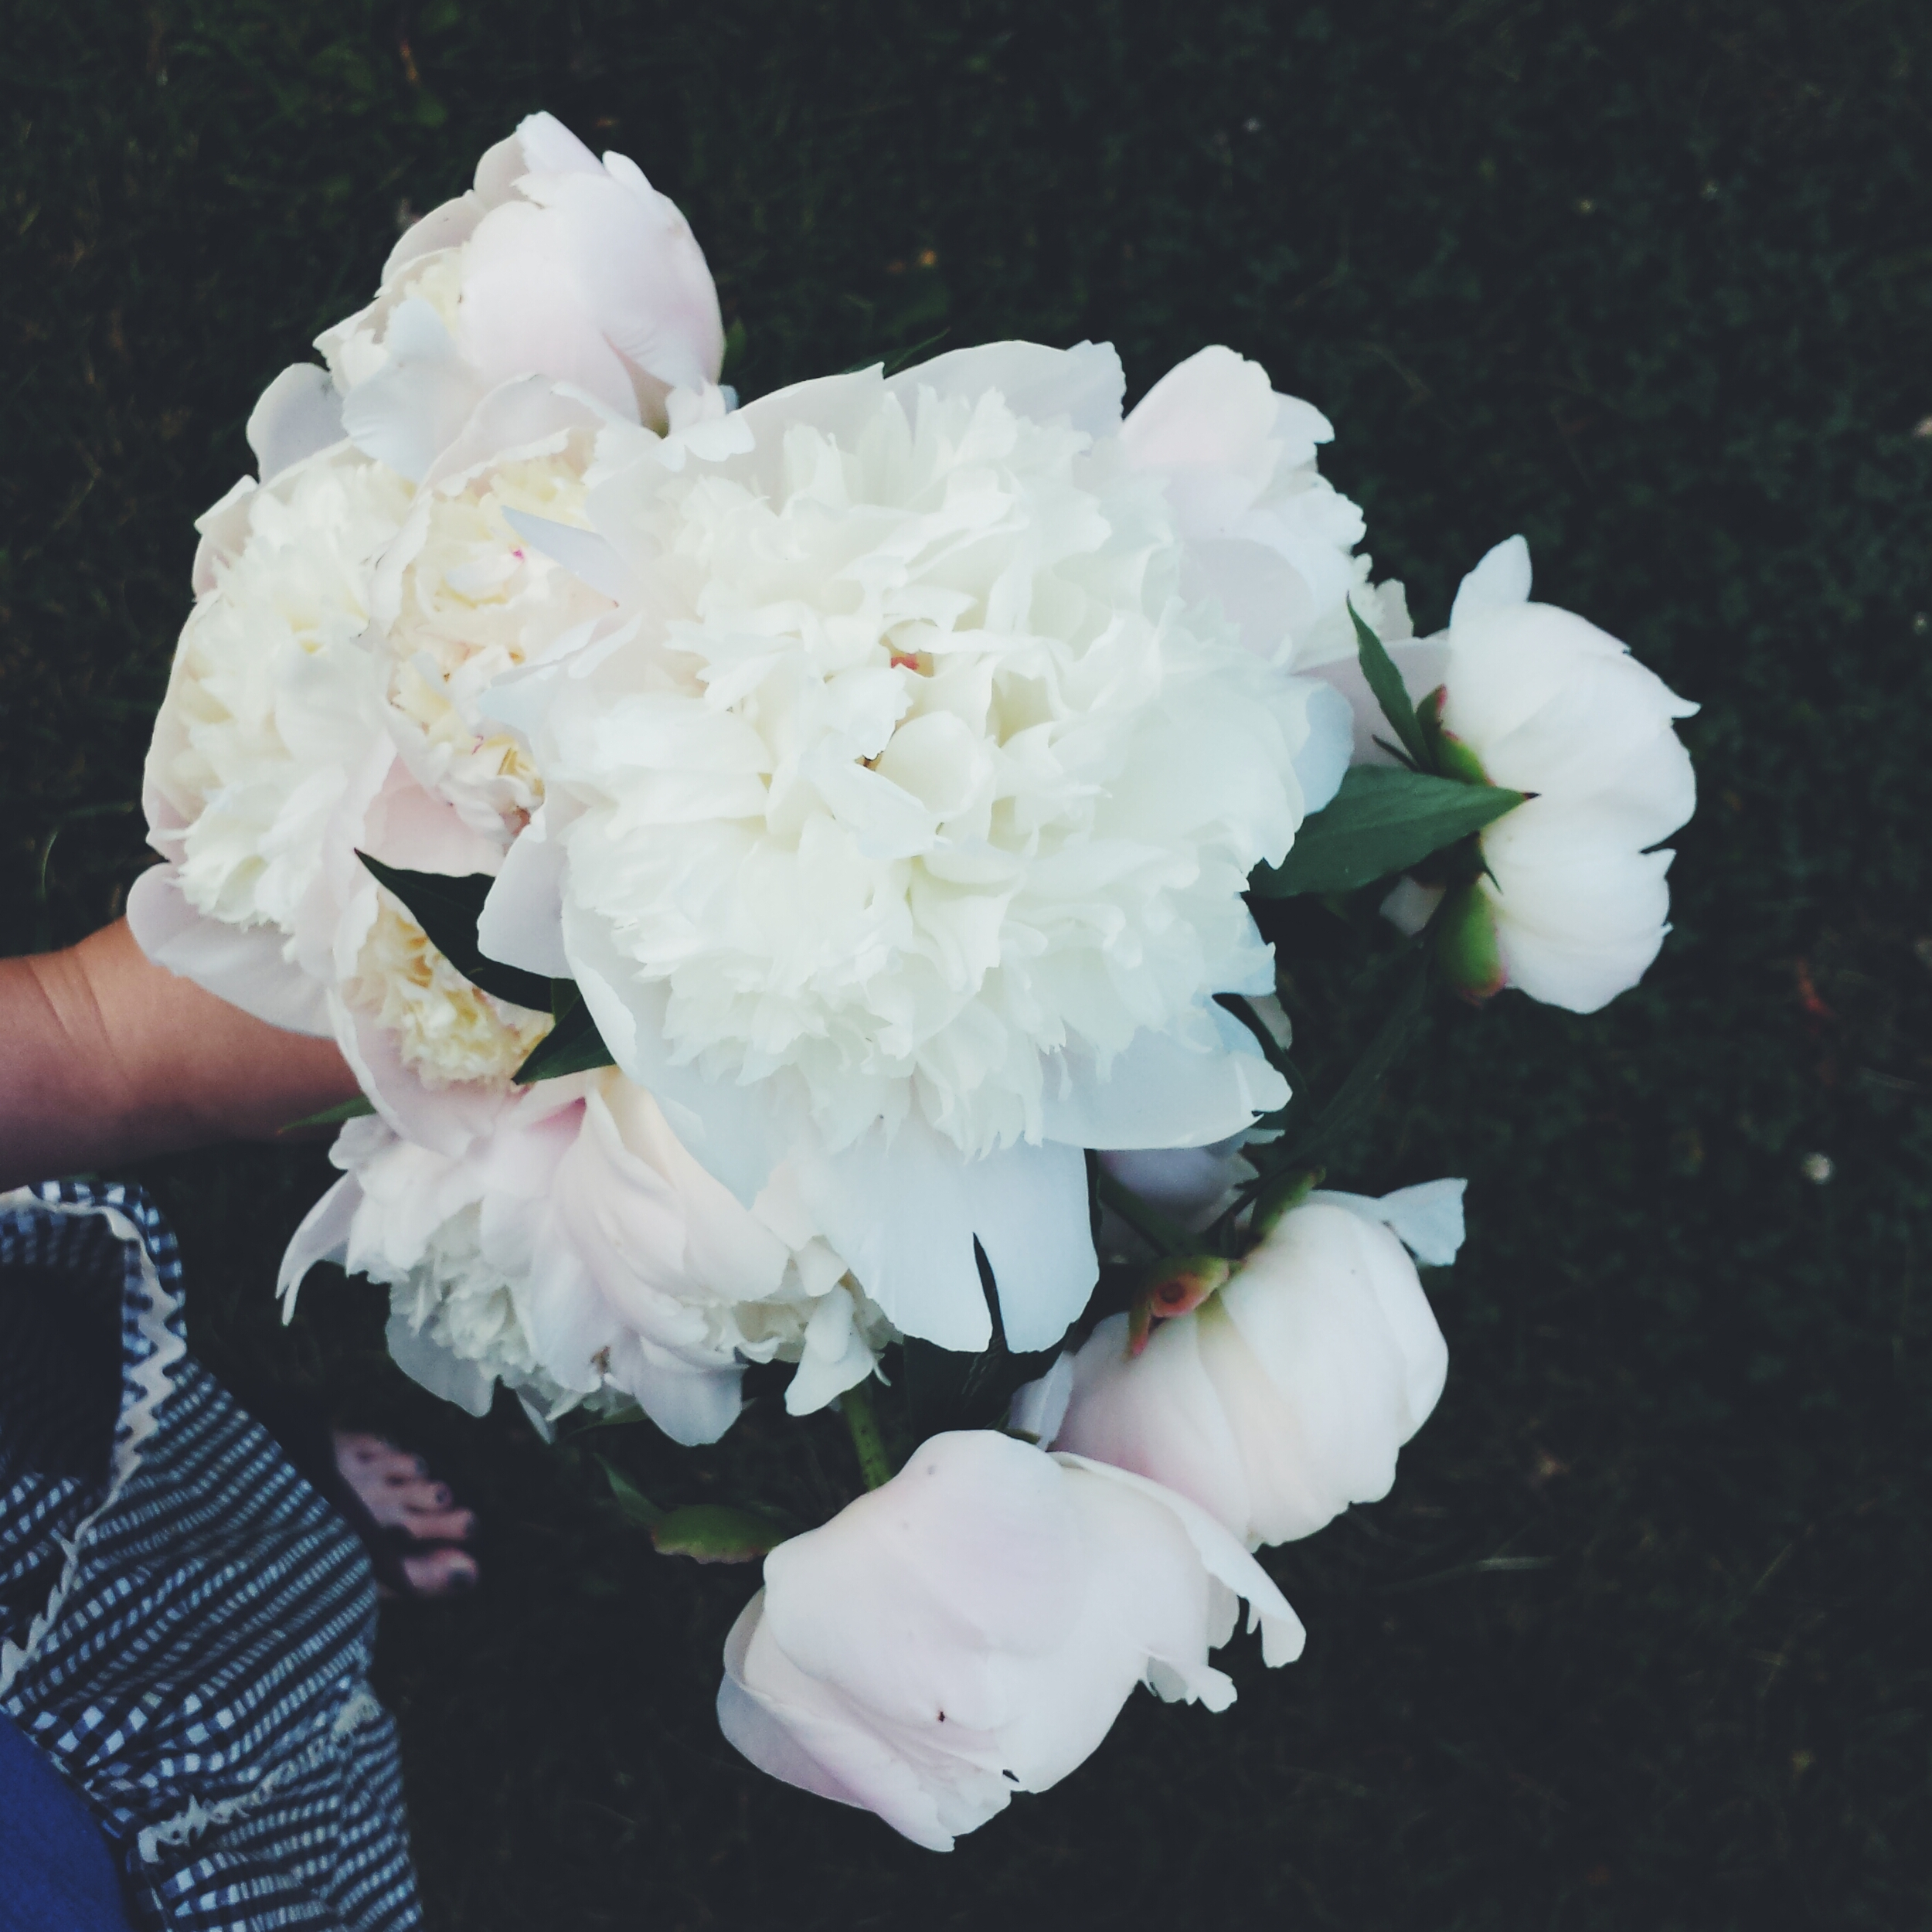 peony season is the best